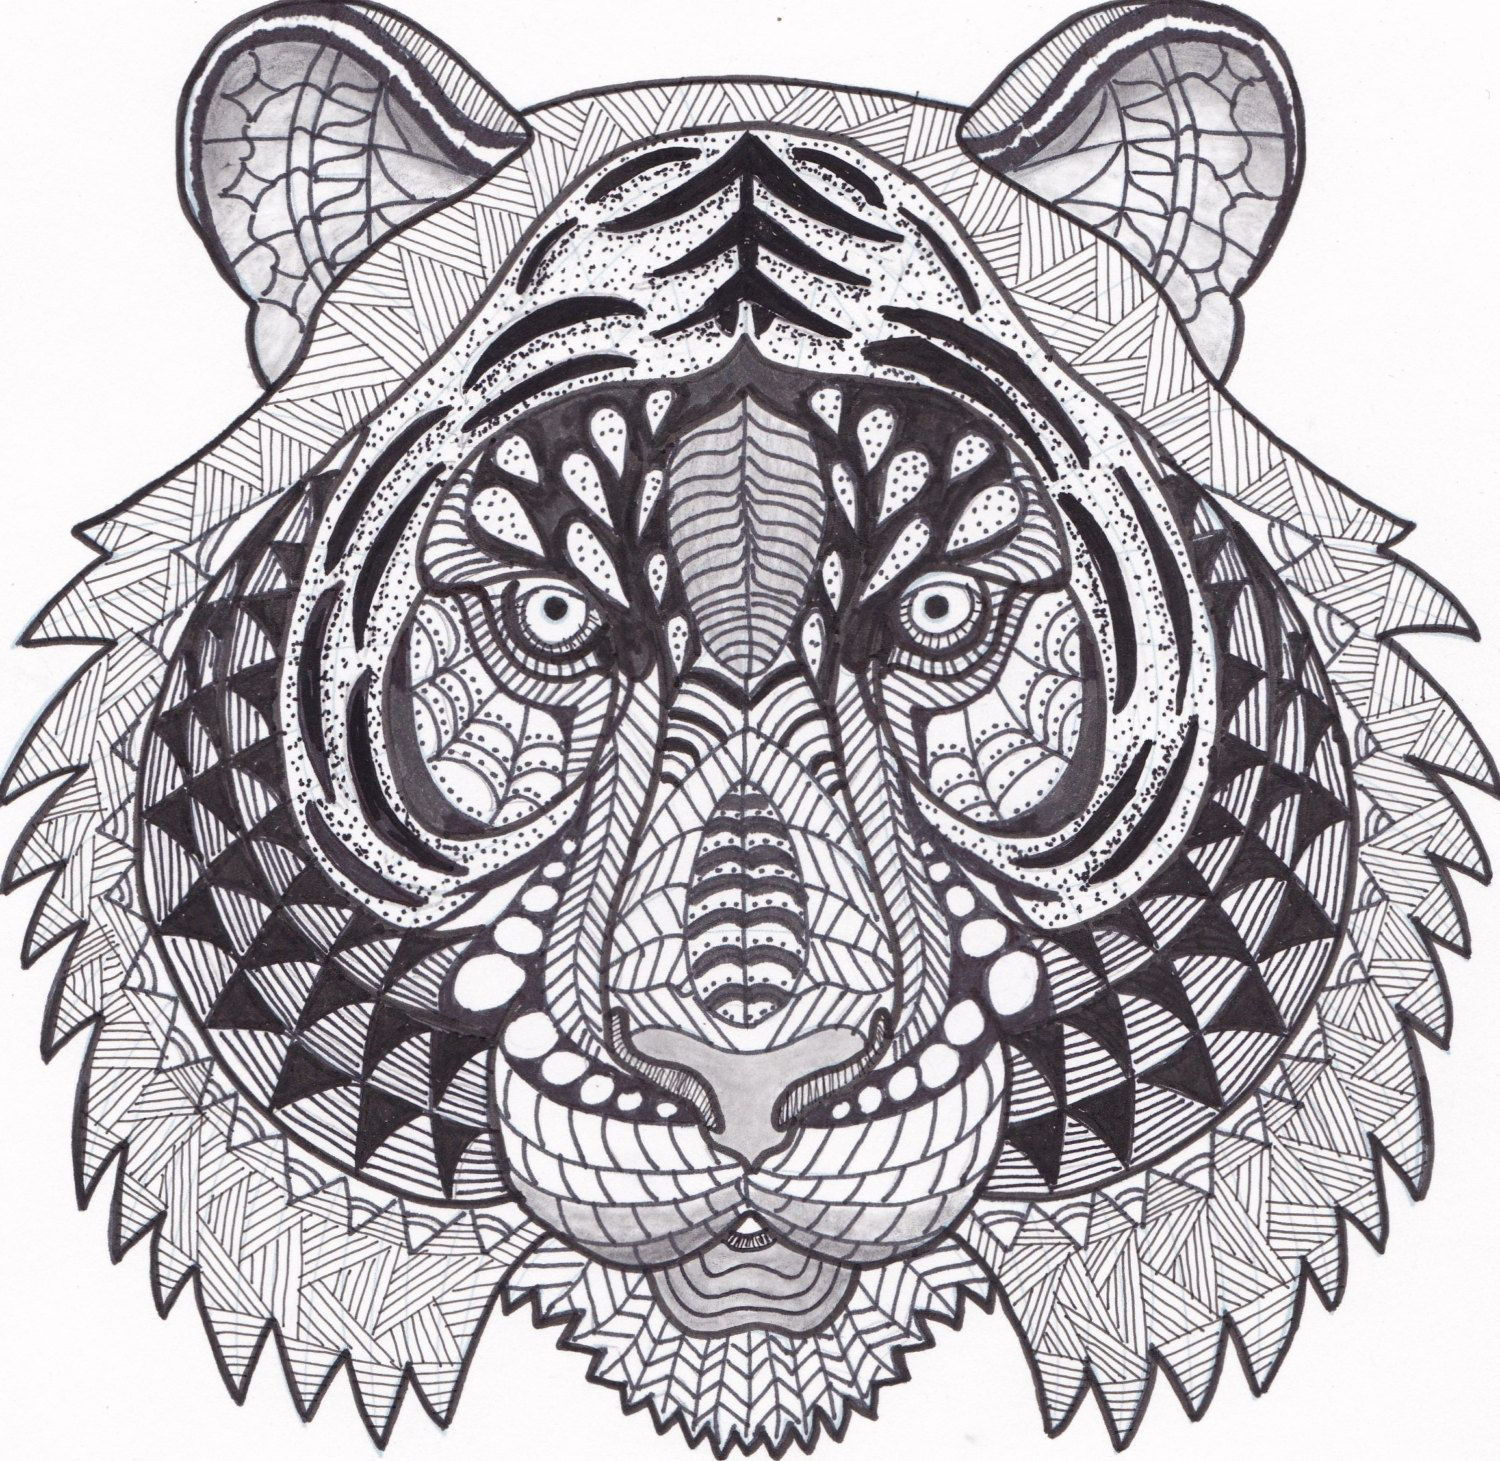 Tiger Zentangle Coloring Page By Inspirationbyvicki On Etsy